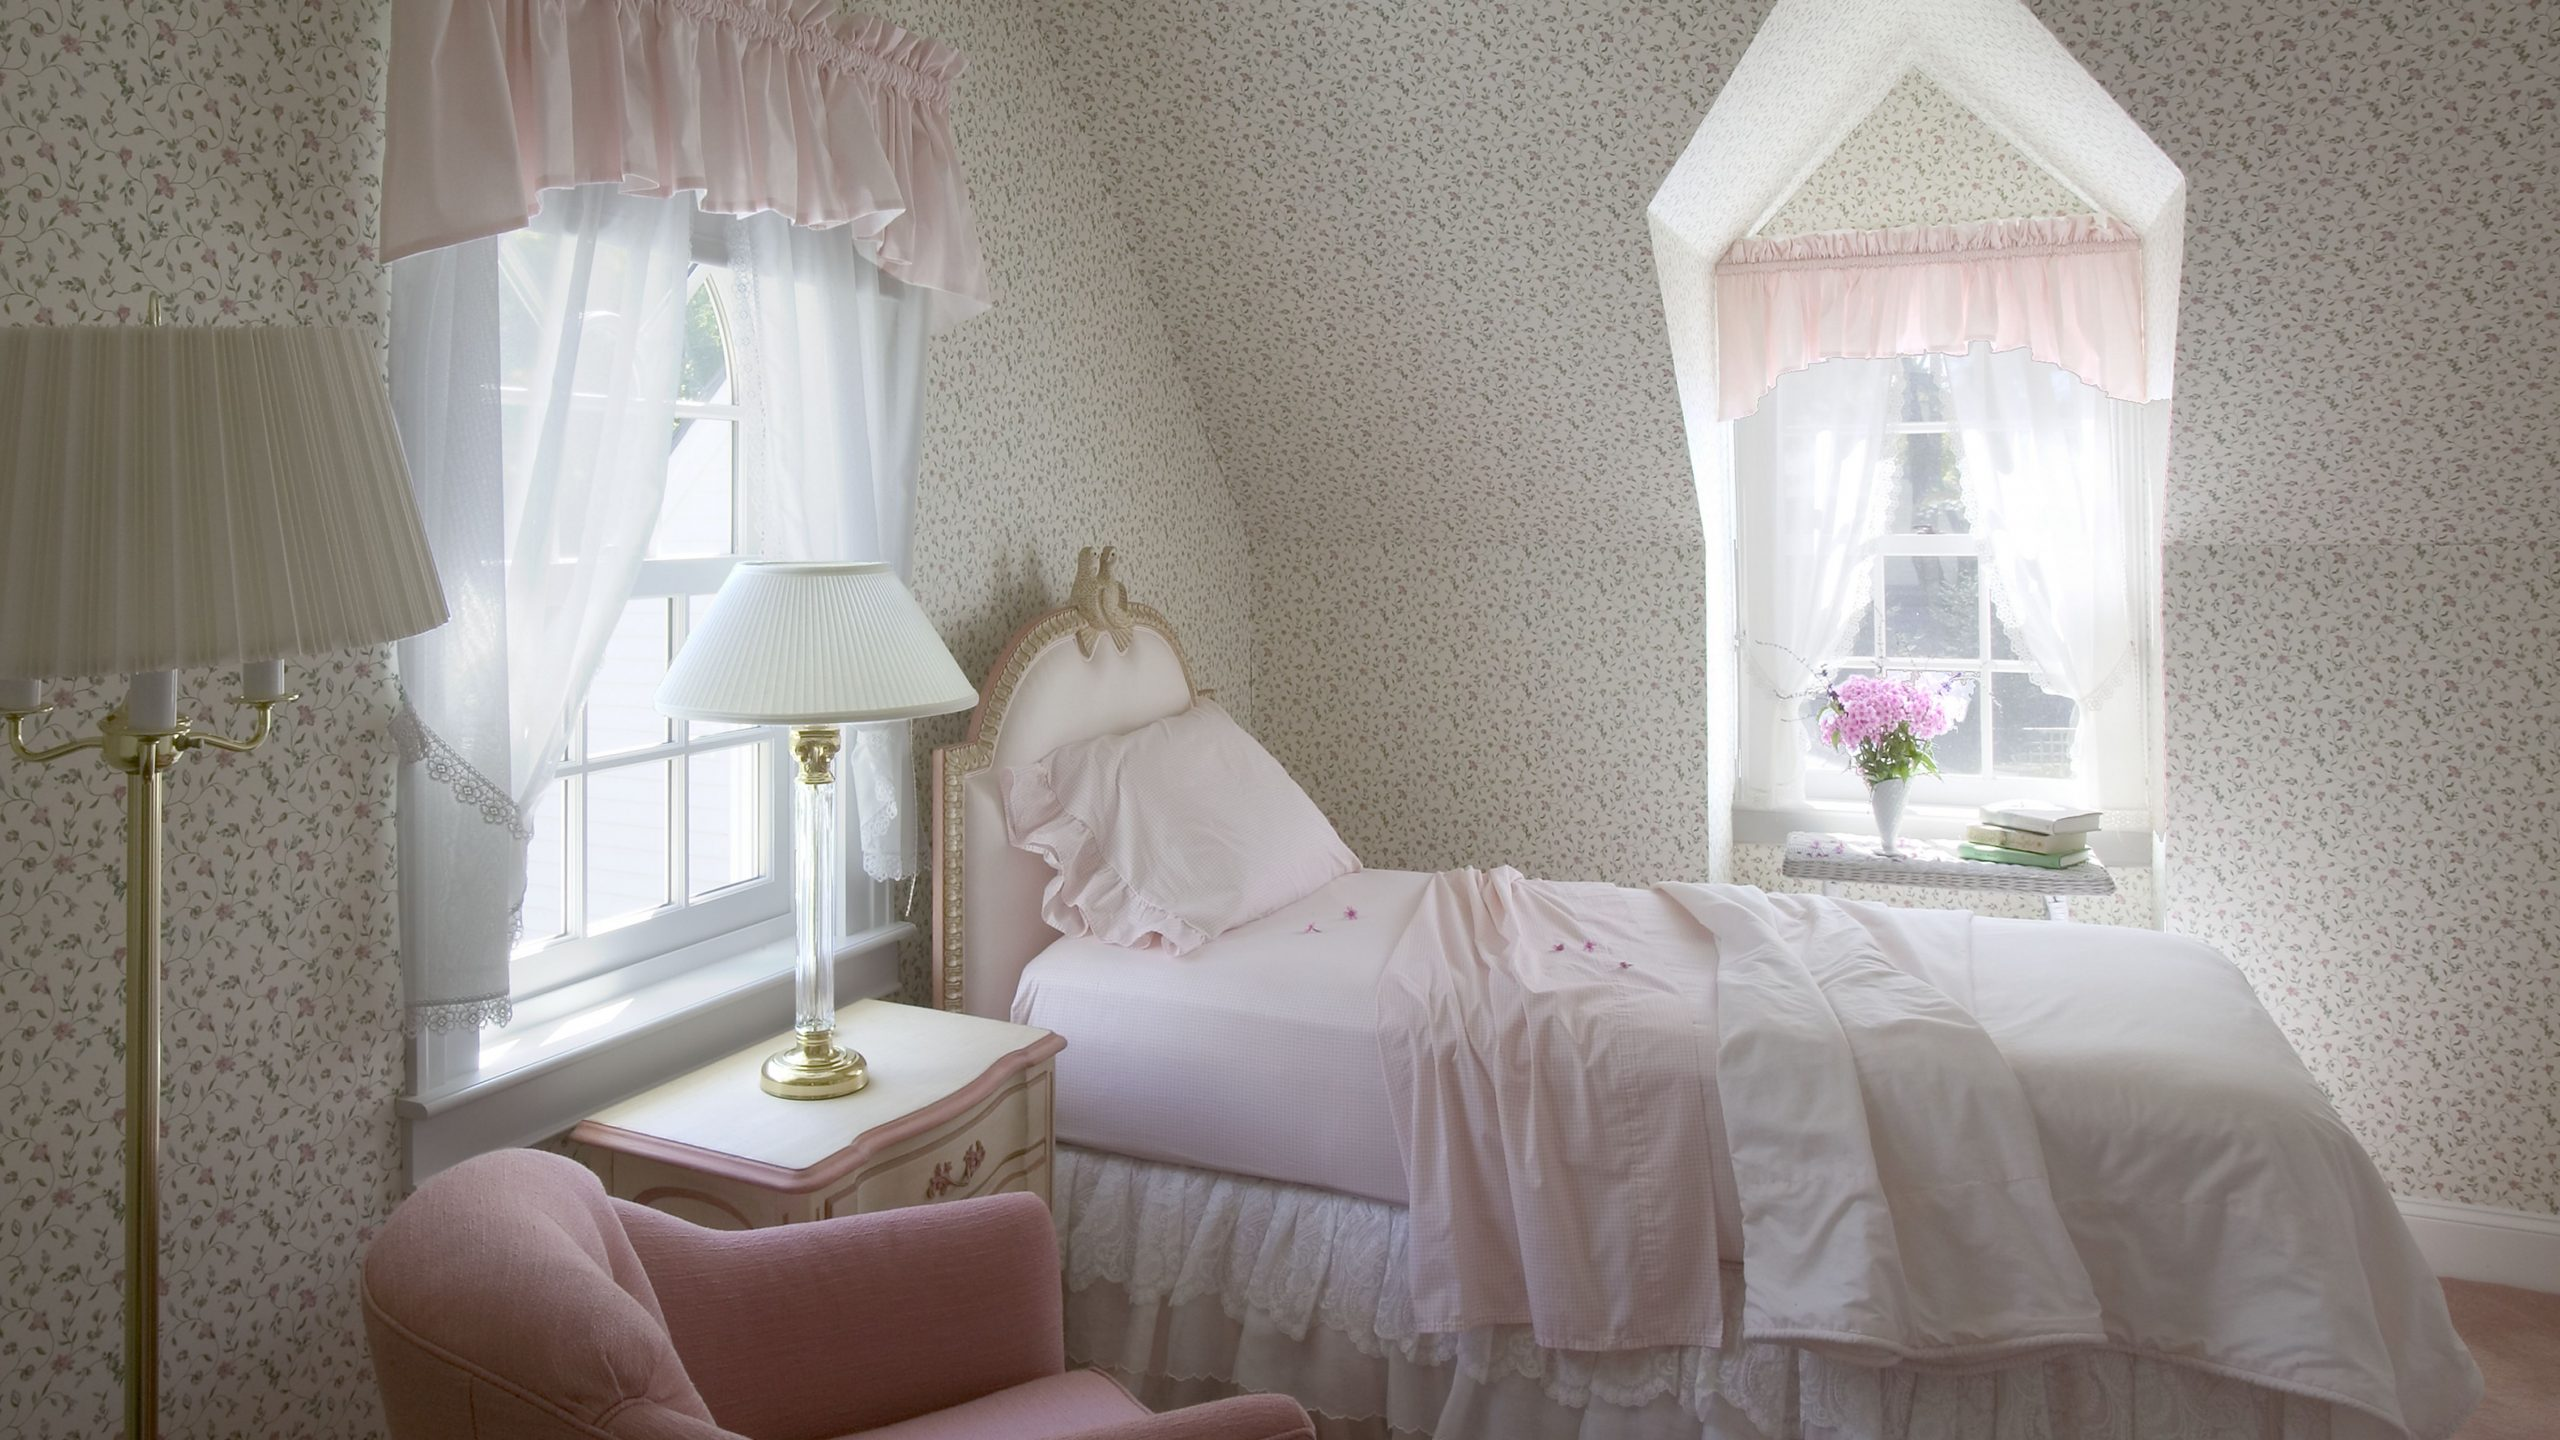 Calculating the Right Depth for Window Valances - Window Valance Ideas For Bedroom